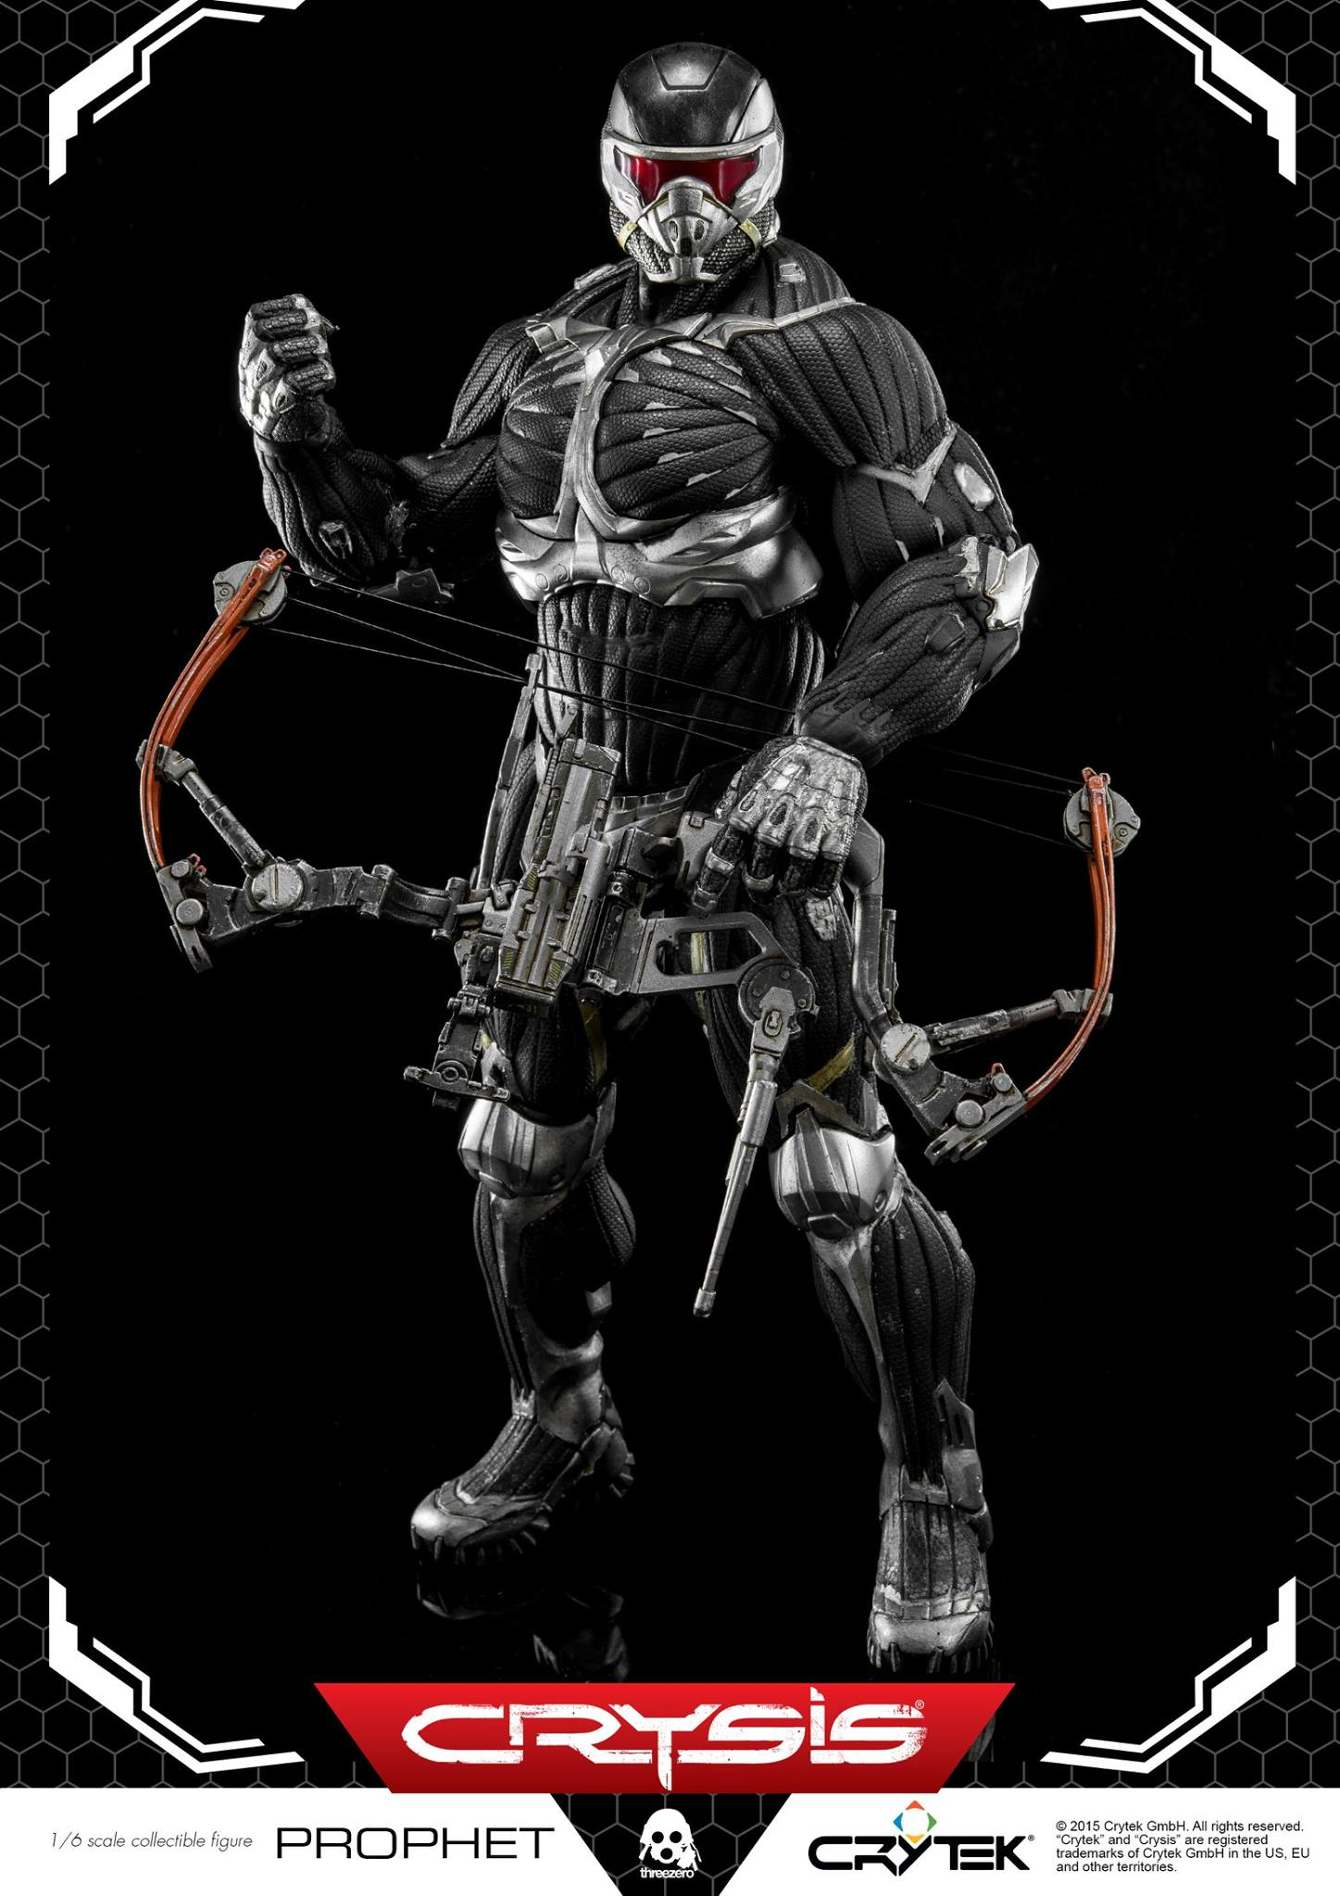 ThreeZero-Crysis-video-game-Prophet-CRY17_1340_c.jpg